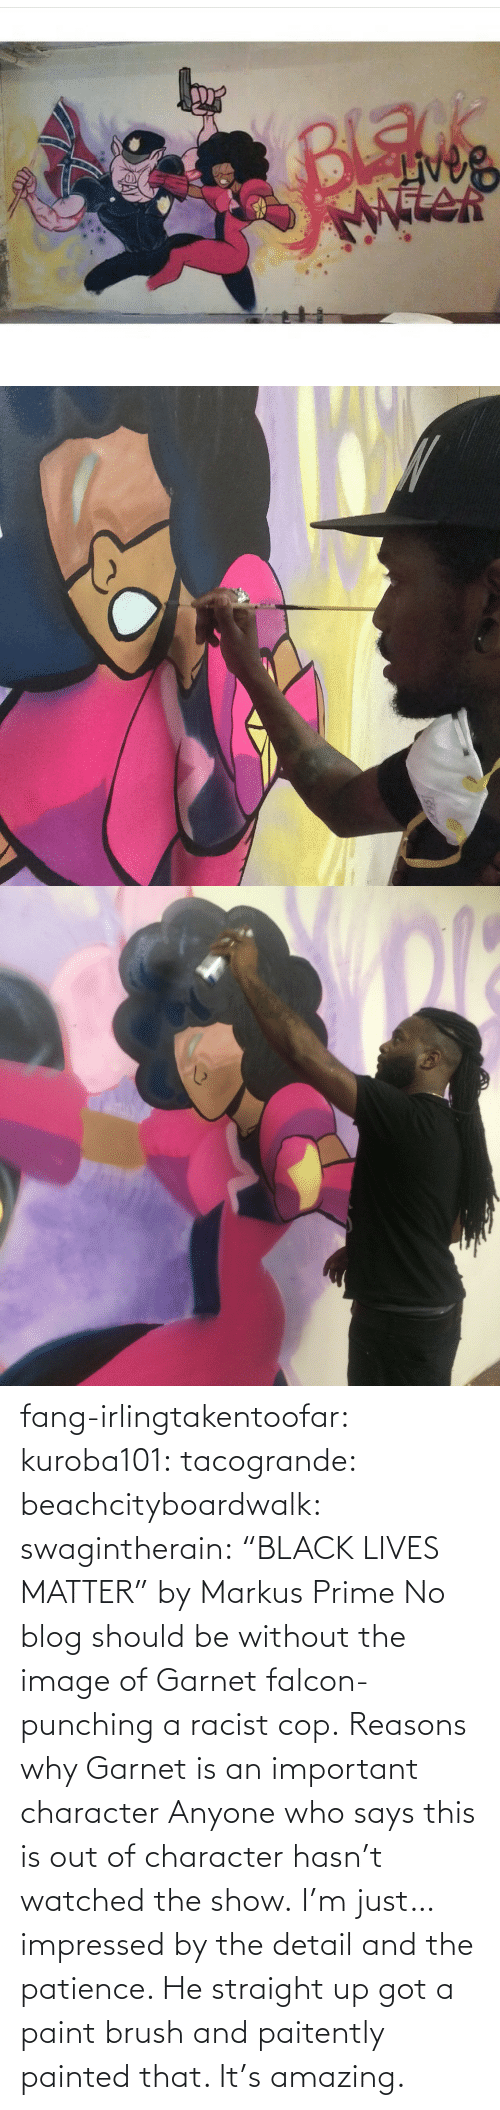 "Amazing: fang-irlingtakentoofar:  kuroba101:  tacogrande:  beachcityboardwalk:  swagintherain:  ""BLACK LIVES MATTER"" by Markus Prime    No blog should be without the image of Garnet falcon-punching a racist cop.  Reasons why Garnet is an important character  Anyone who says this is out of character hasn't watched the show.    I'm just… impressed by the detail and the patience. He straight up got a paint brush and paitently painted that. It's amazing."